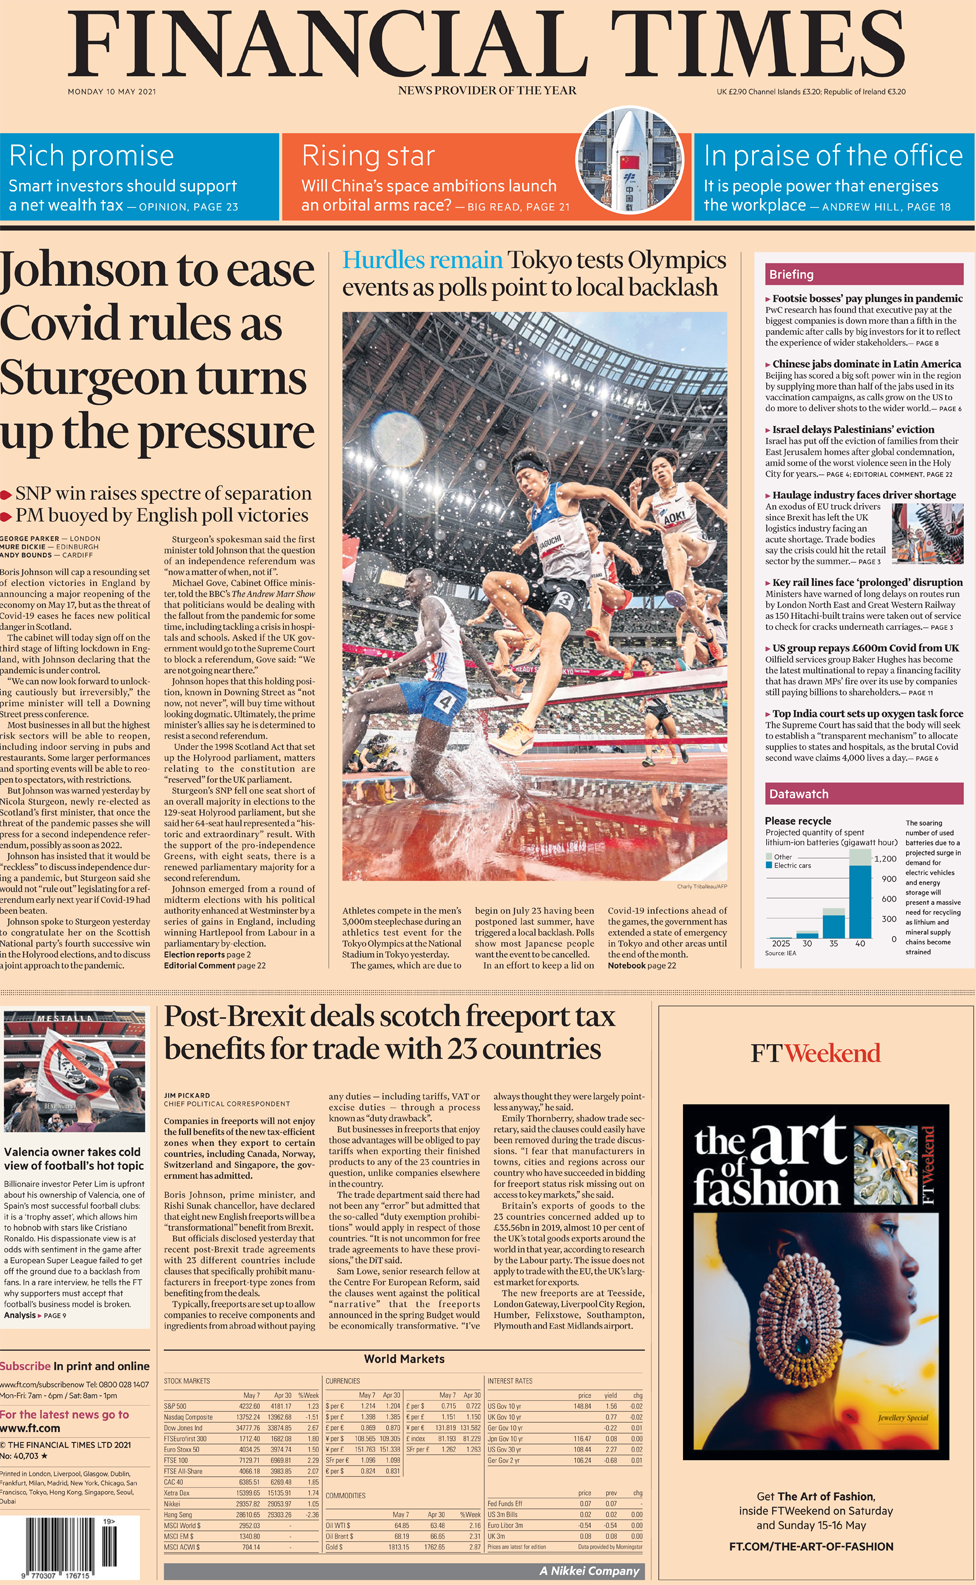 The Financial Times front page 10 May 2021